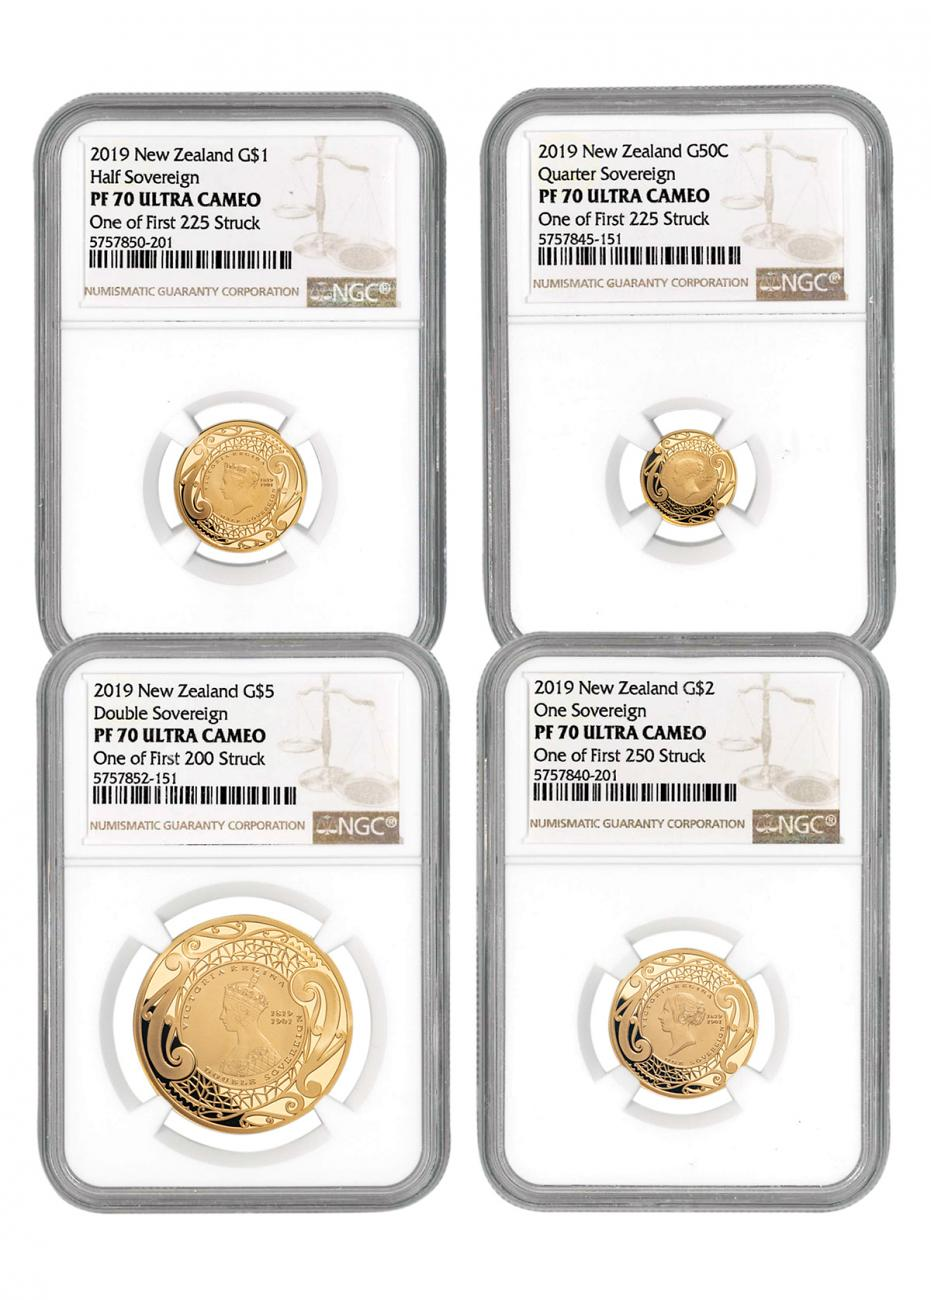 4-Piece Set - 2019 New Zealand Gold Sovereign Proof Coins Scarce and Unique Coin Division NGC PF70 UC FS One of First Struck